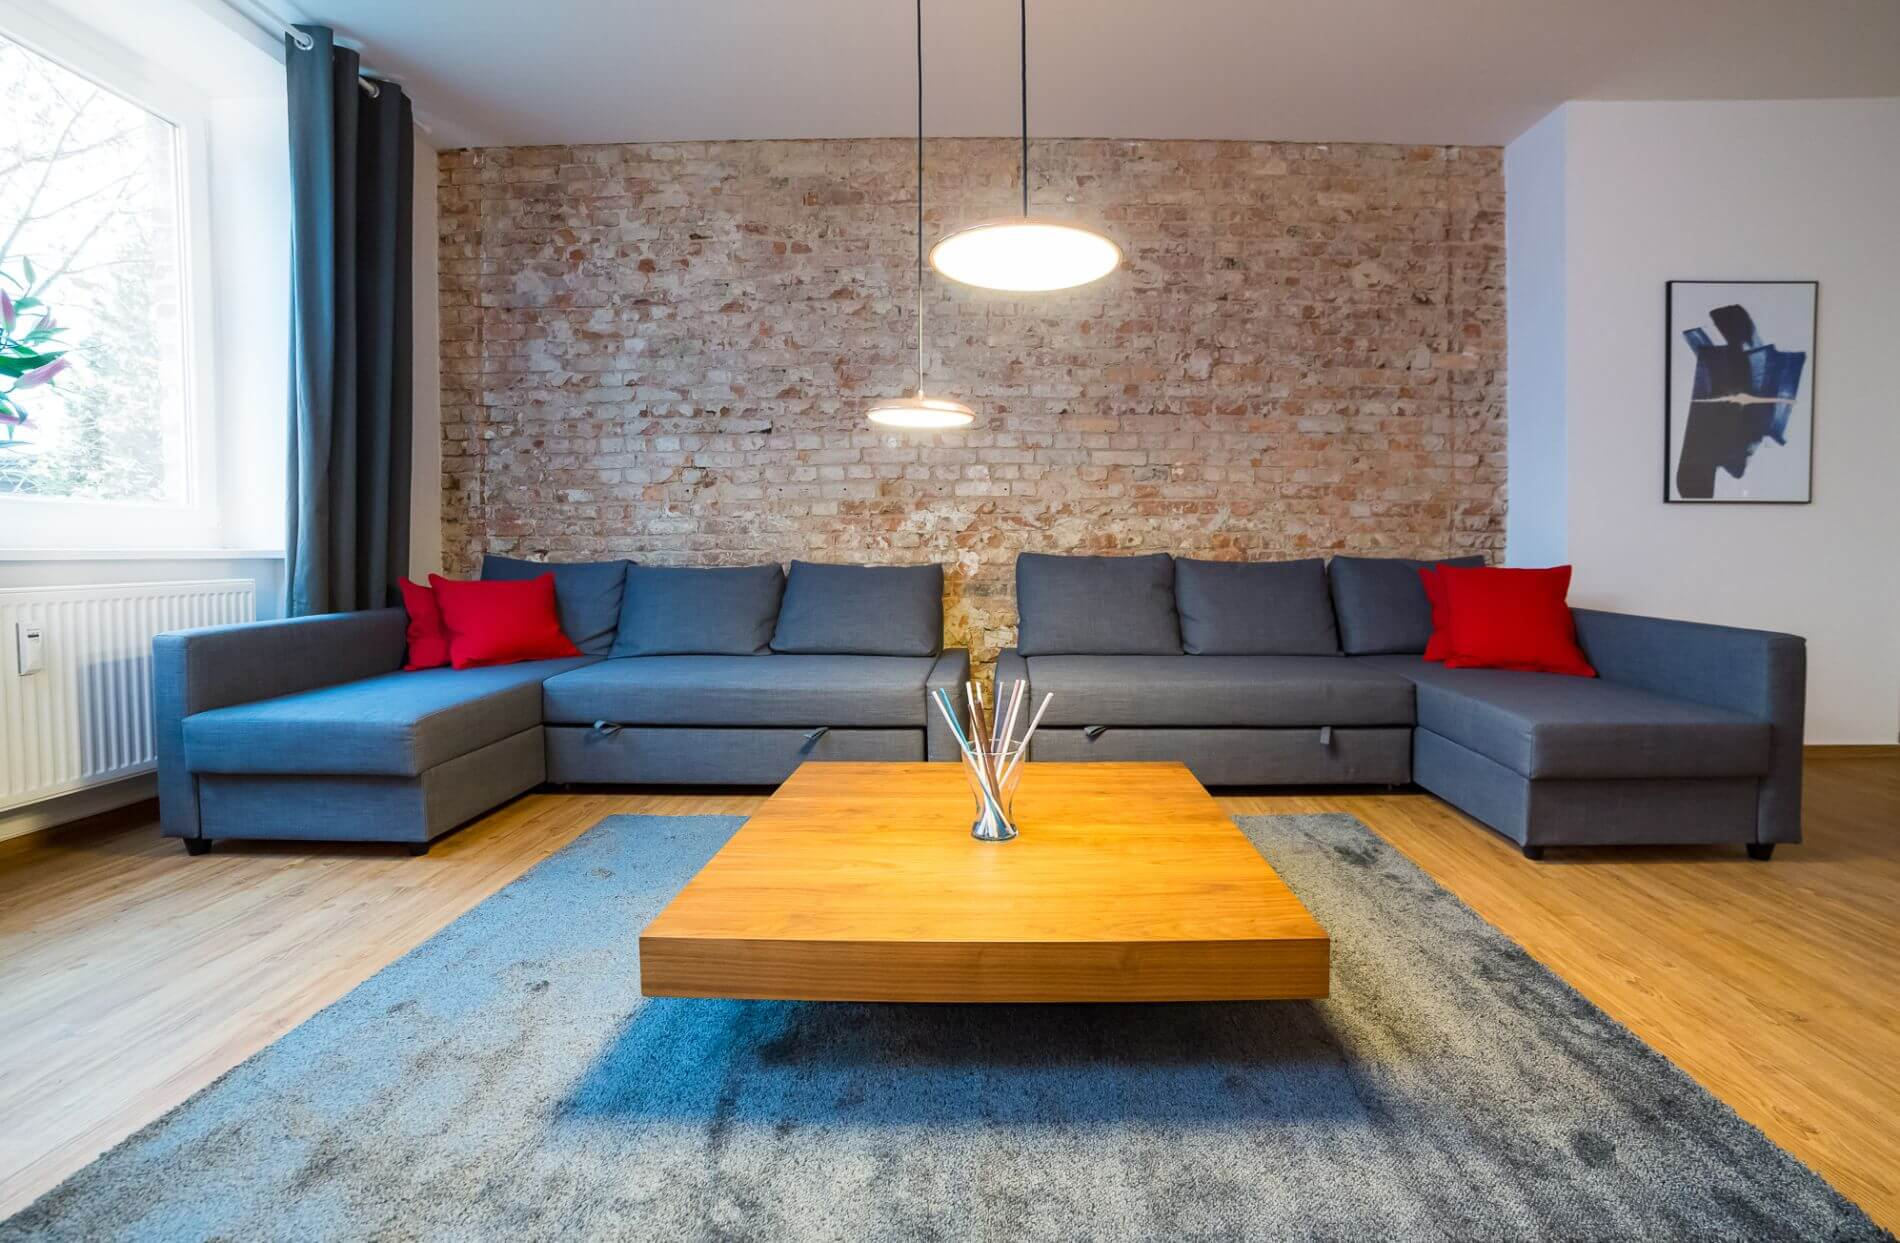 Serviced loft apartment with balcony in Berlin